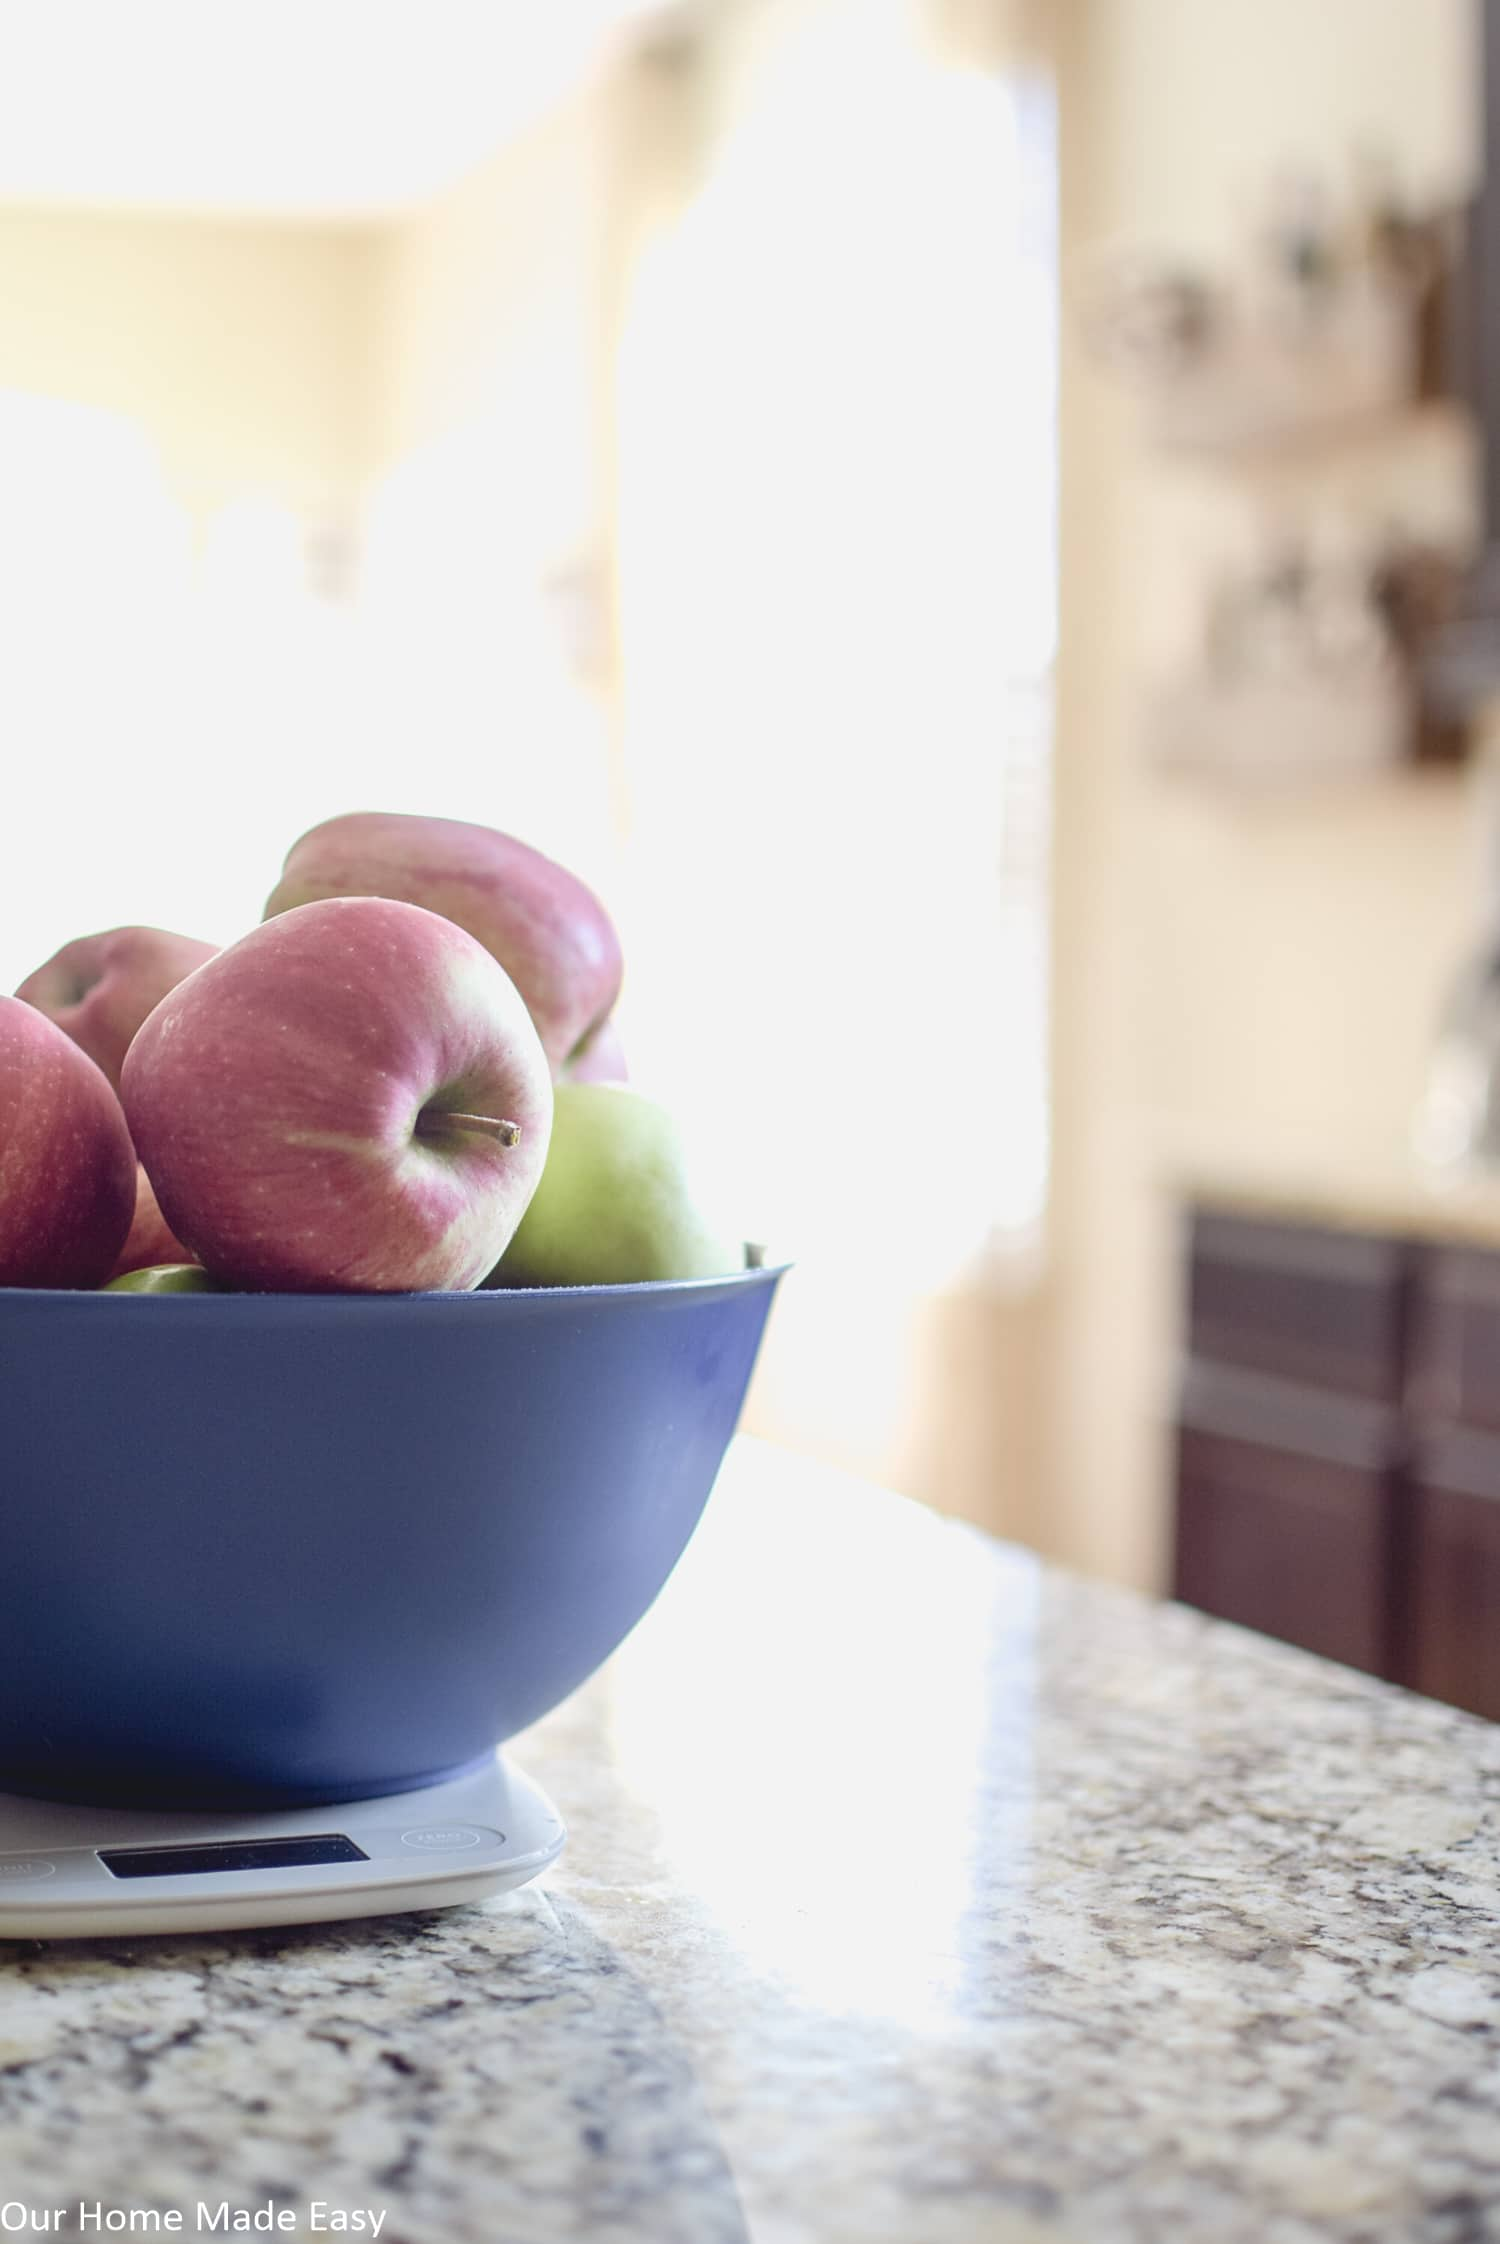 these delicious fresh-picked apples are ready to be made into fresh crockpot apple butter